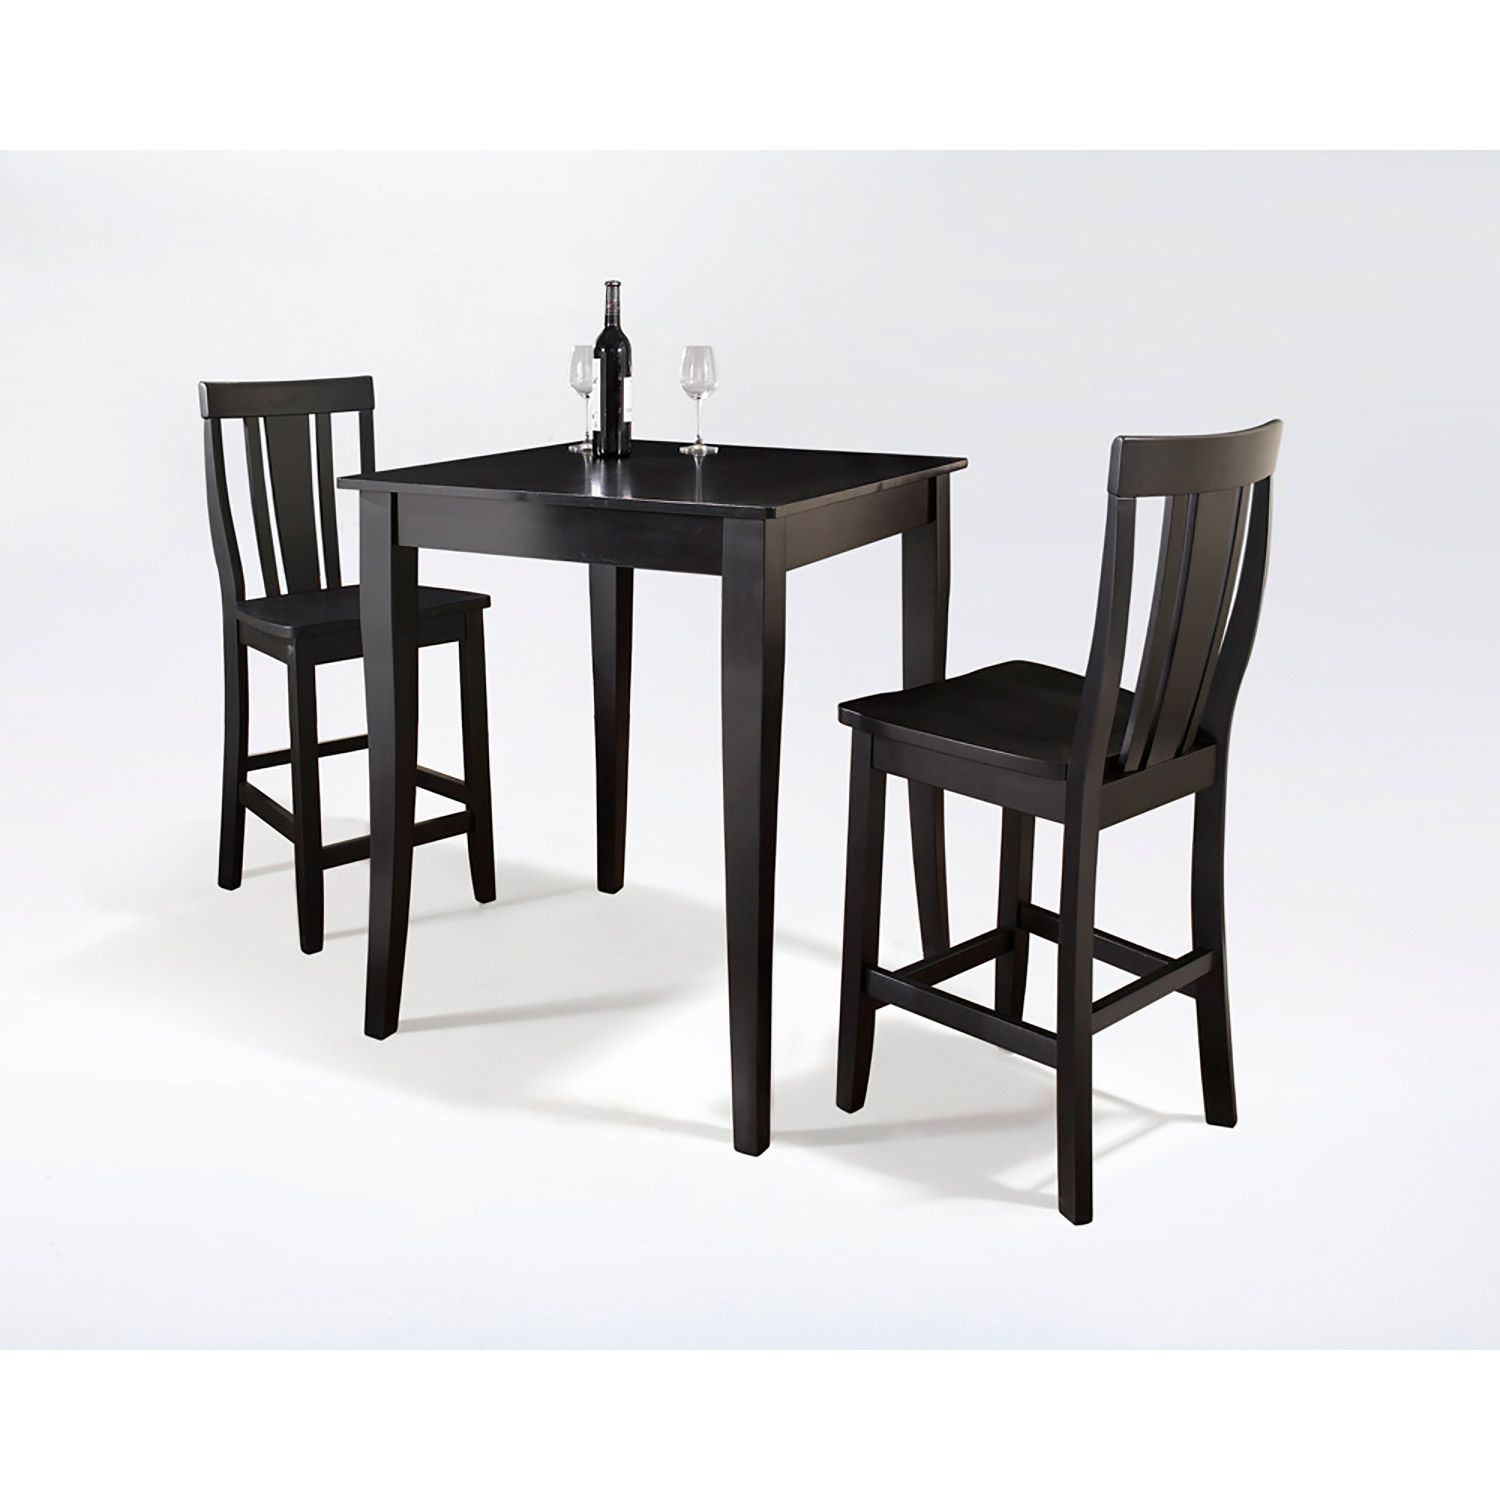 3 Piece Pub Dining Set Black D Kd320002bk Crosley